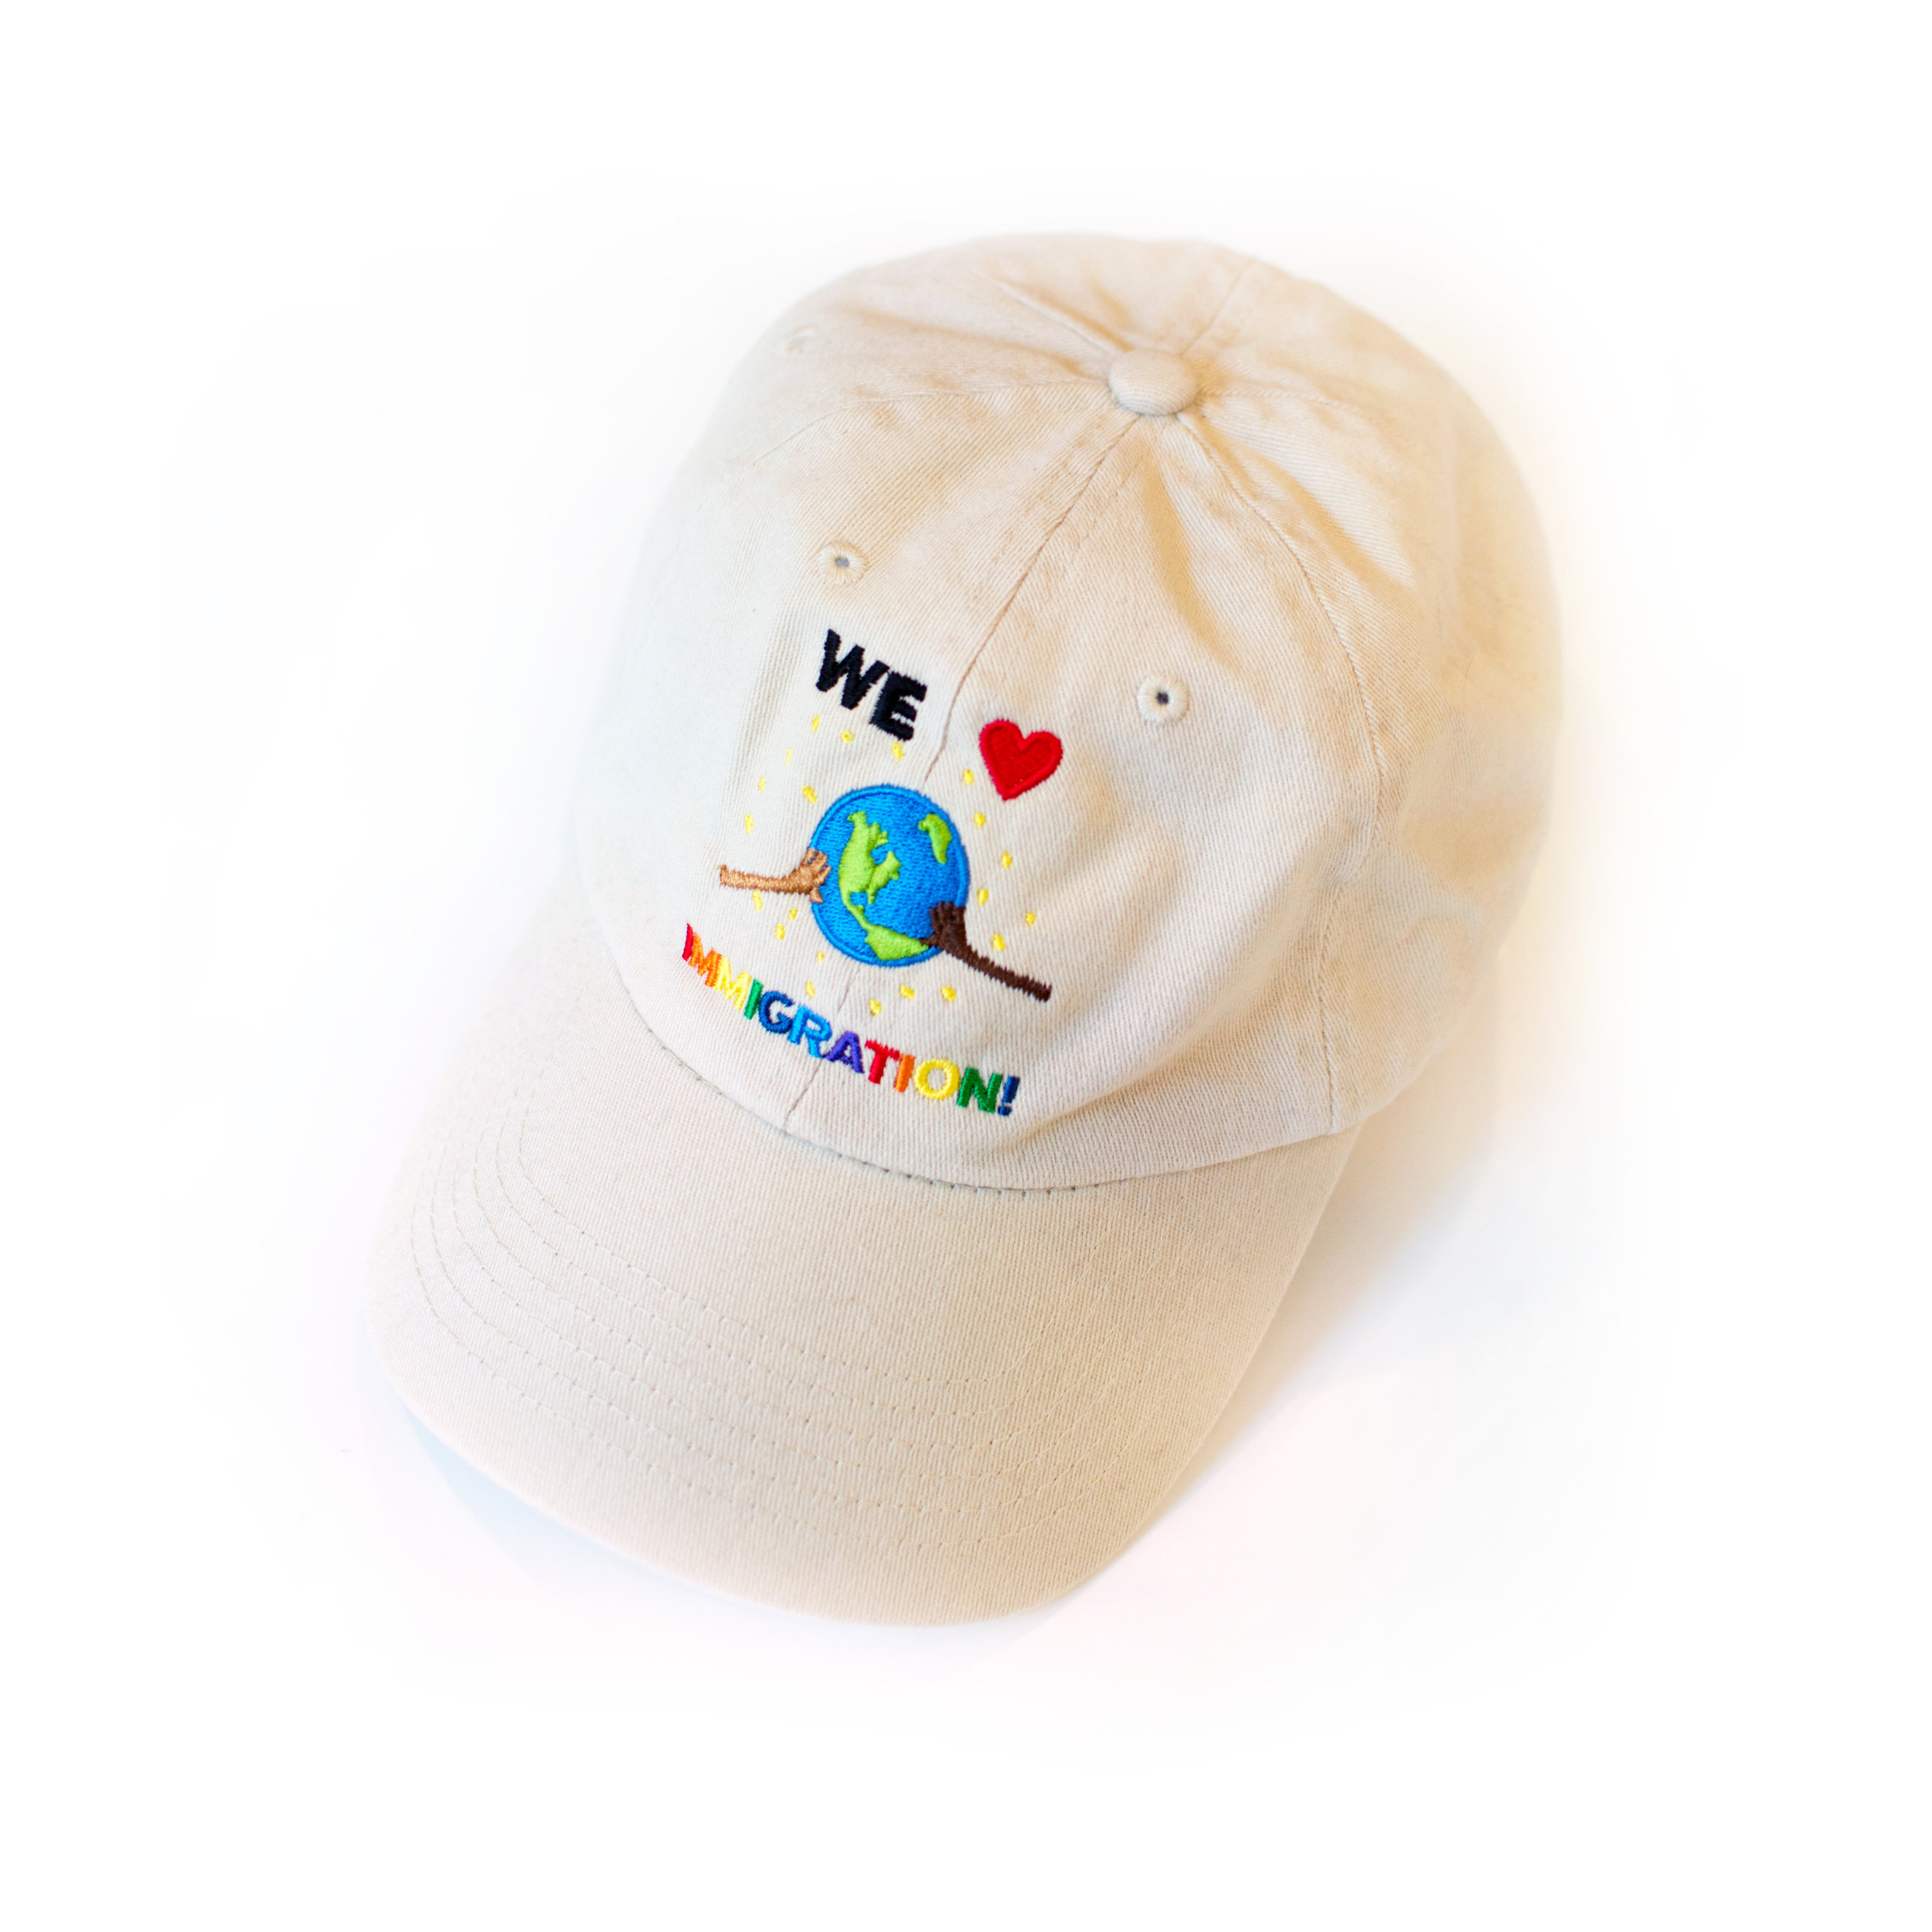 2018: College Success Academy   6th grade students in East Boston designed hats to encourage inclusivity and show support for the large immigrant population in their community.